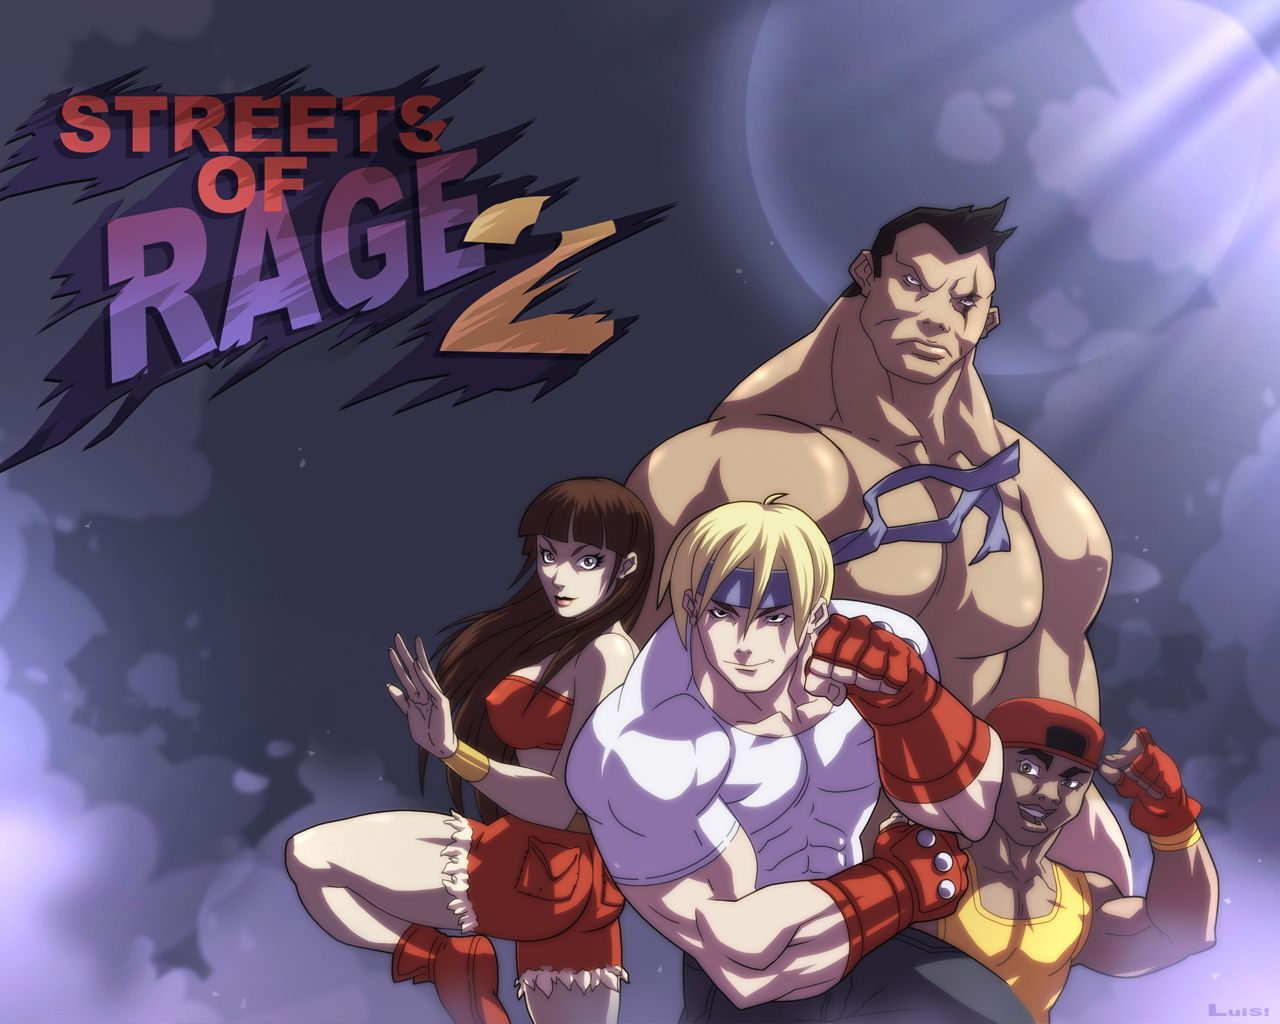 Streets Of Rage 2 Wallpaper Rage Street Anime